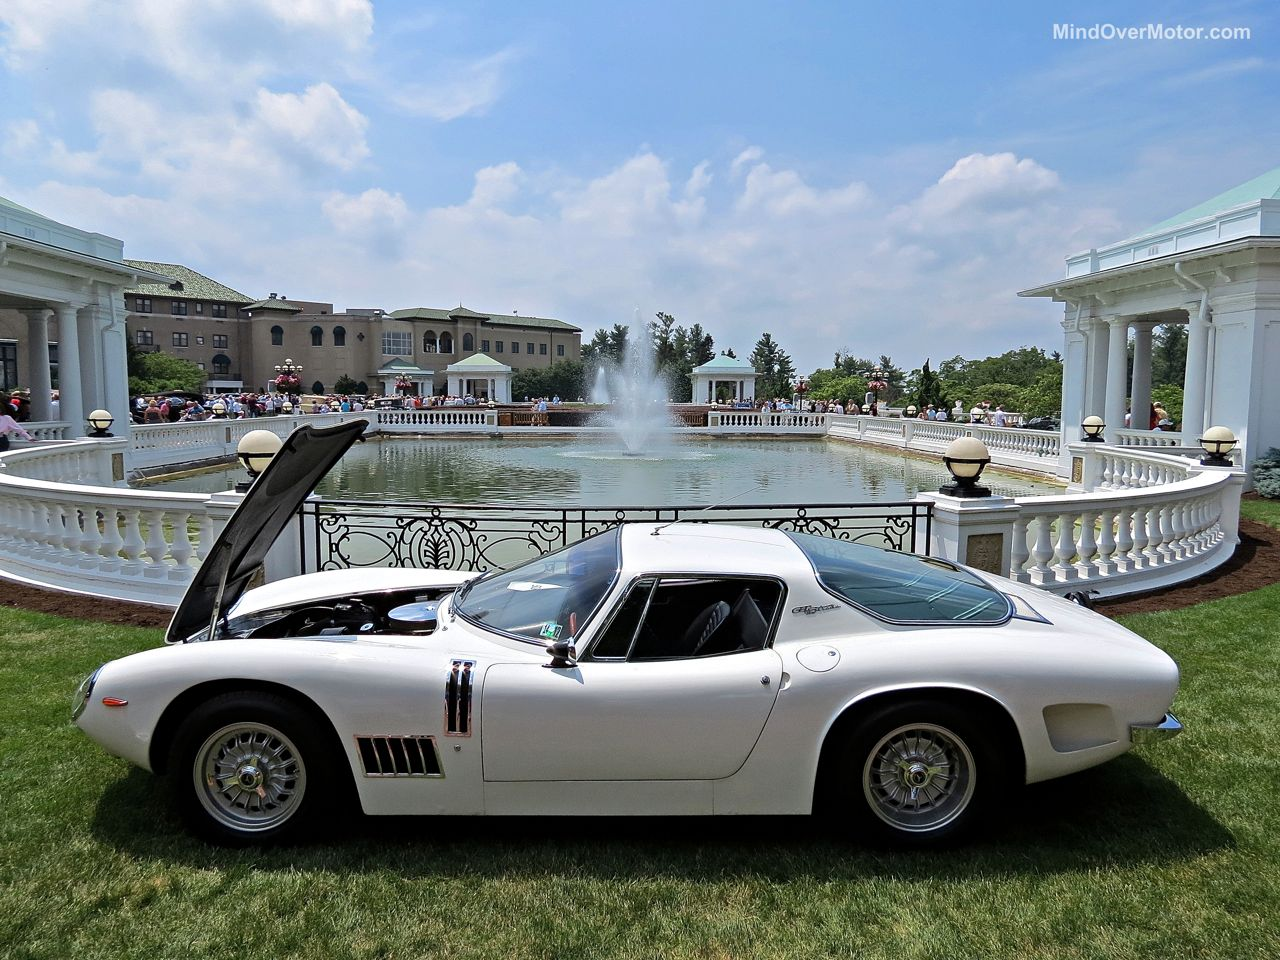 Hershey Elegance Bizzarrini 5300